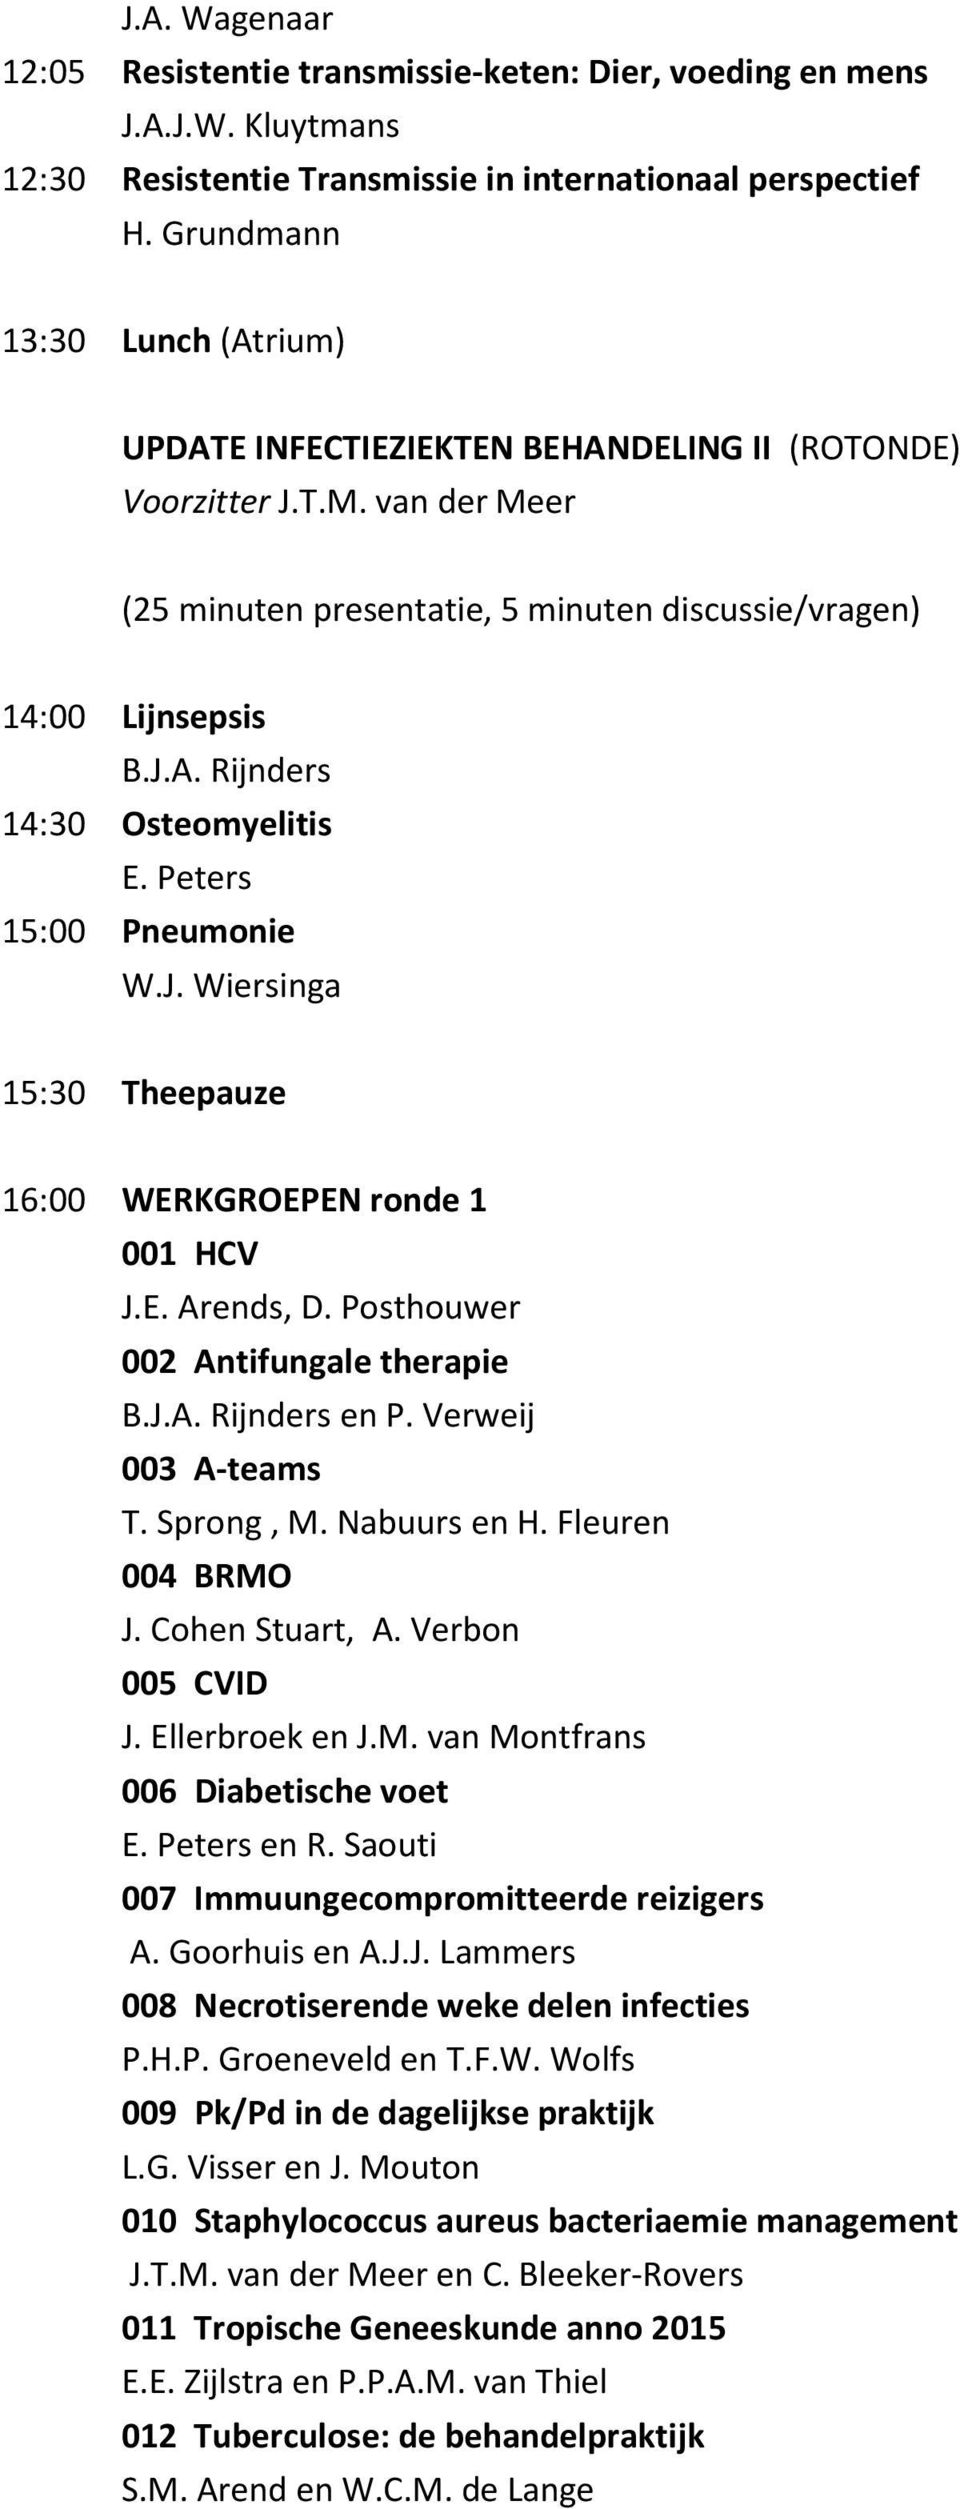 Peters 15:00 Pneumonie W.J. Wiersinga 15:30 Theepauze 16:00 WERKGROEPEN ronde 1 001 HCV J.E. Arends, D. Posthouwer 002 Antifungale therapie B.J.A. Rijnders en P. Verweij 003 A-teams T. Sprong, M.